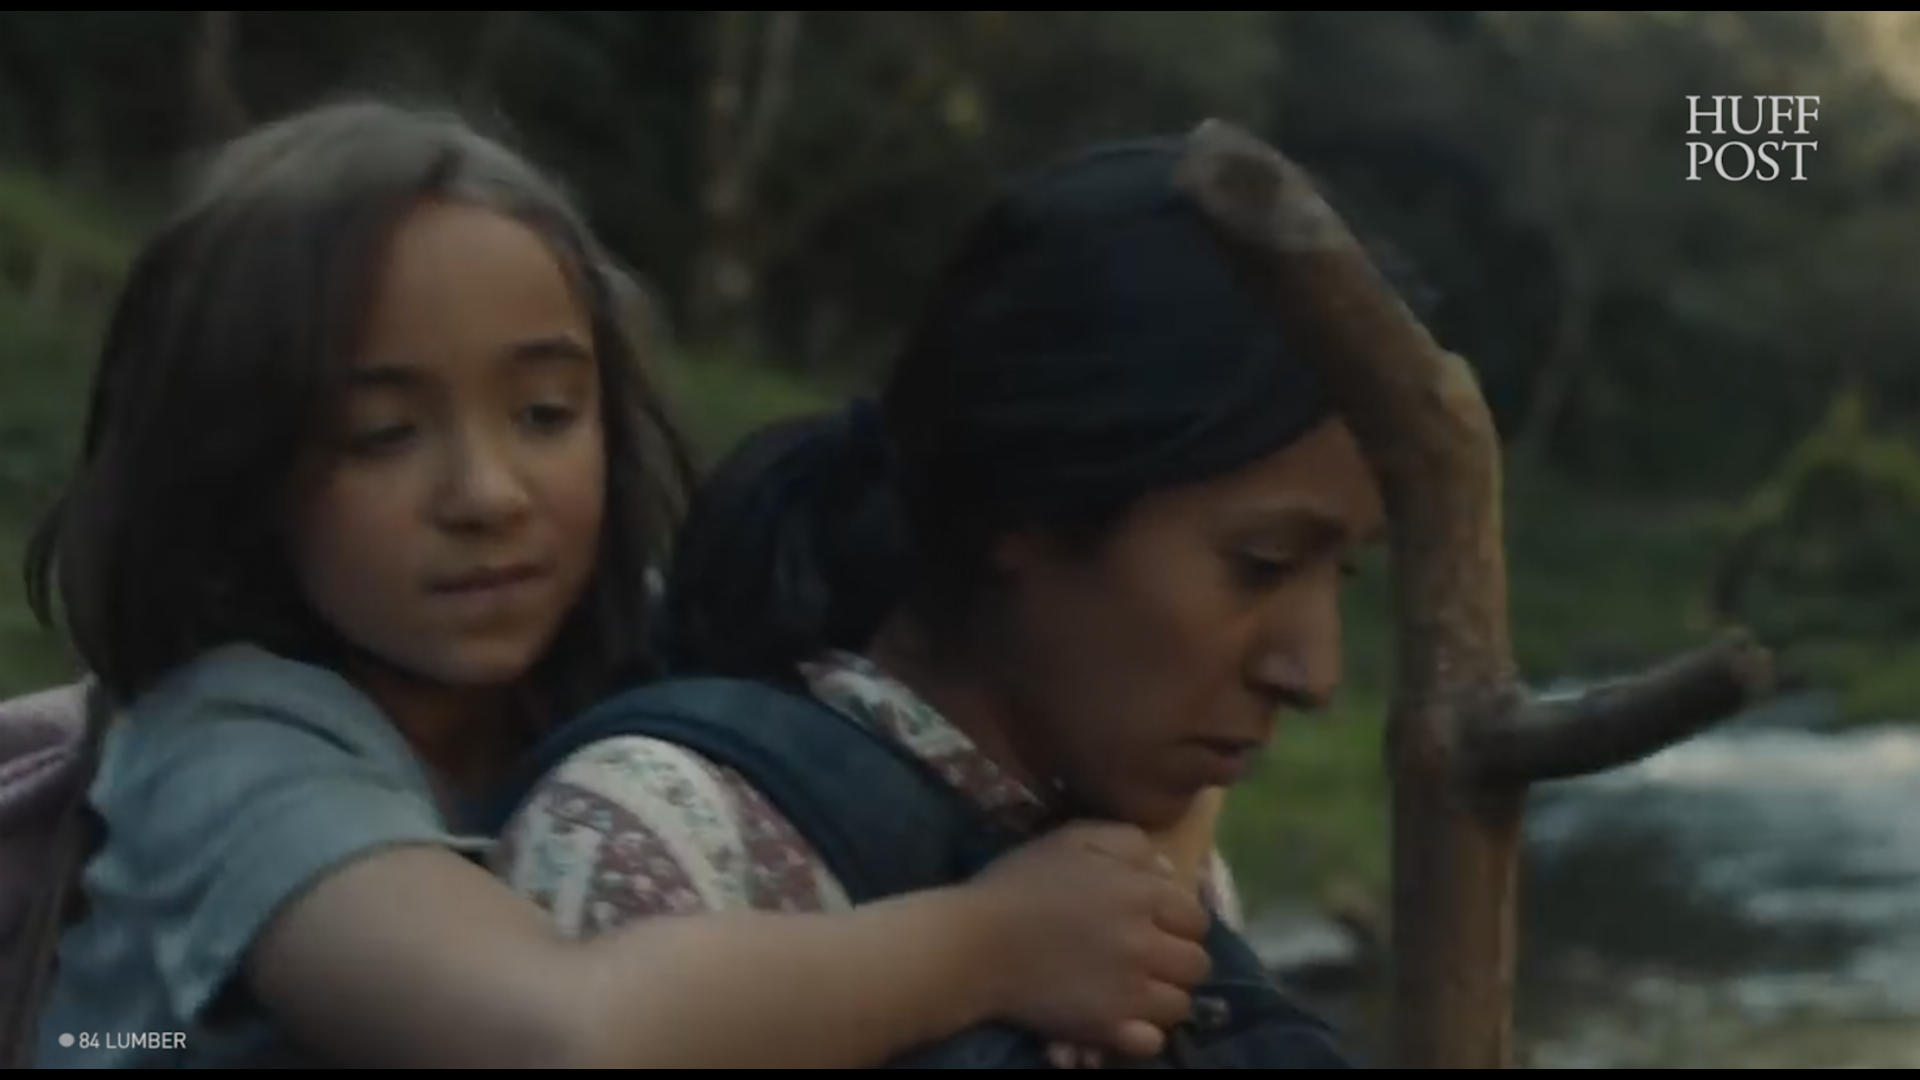 Here's The 'Controversial' Super Bowl Ad That Crashed 84 Lumber's Website